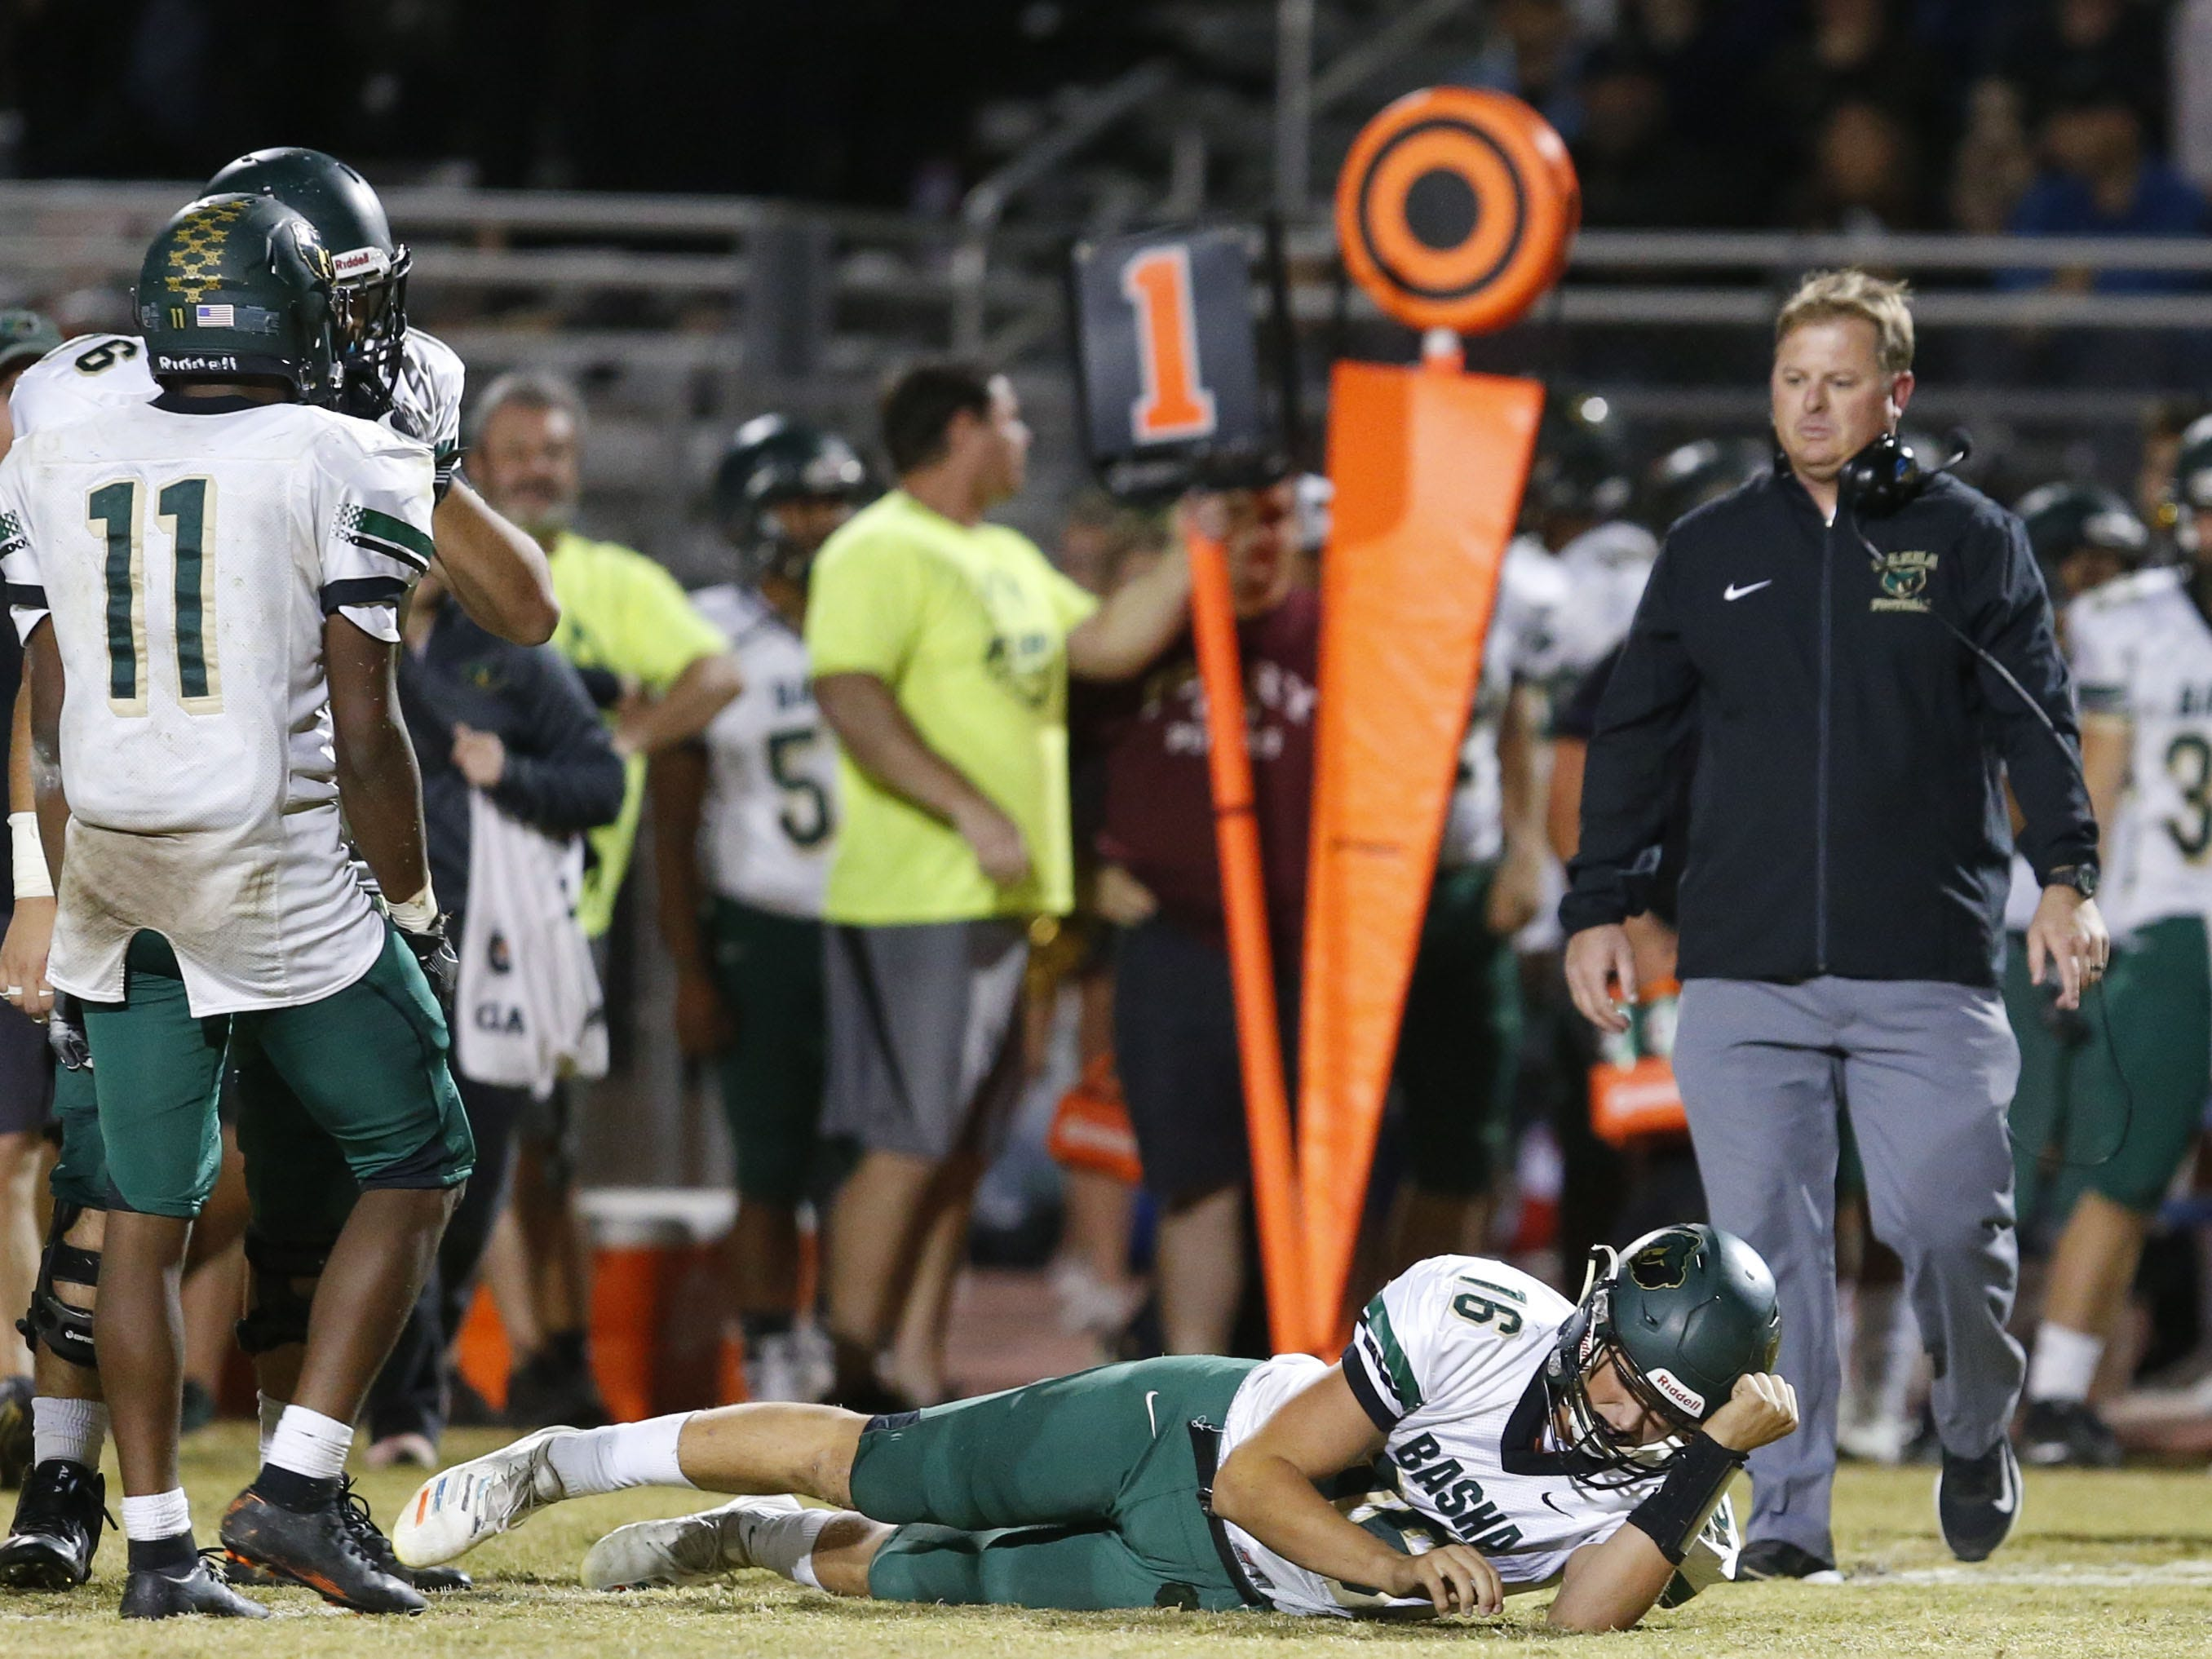 Bashas head coach Chris McDonald walks onto the field after quarterback Gabe Friend (16) is injured during the fourth quarter of a football game against Perry at Perry High School on November 2. #azhsfb